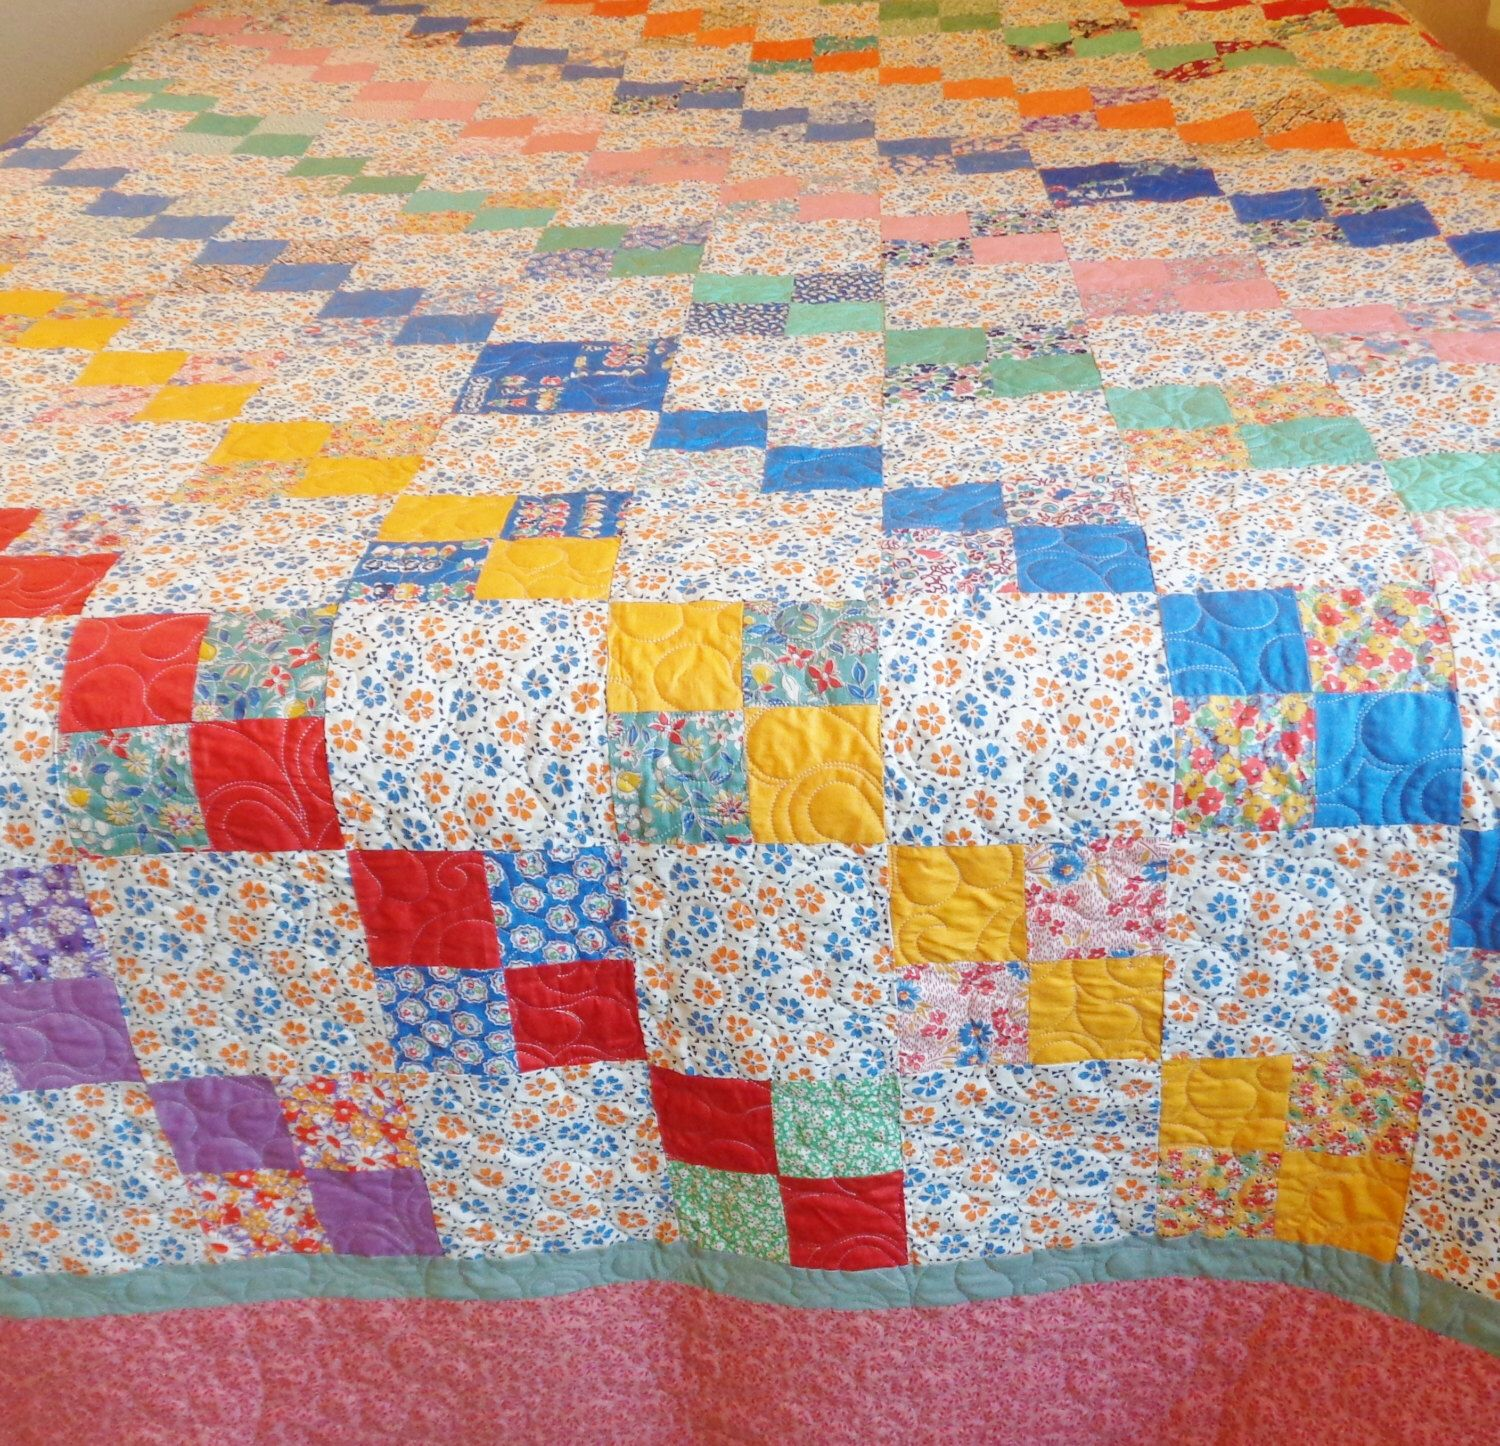 Quilt for sale queen 76 x 99 scrappy feedsack handmade in USA by ... : feedsack quilts for sale - Adamdwight.com